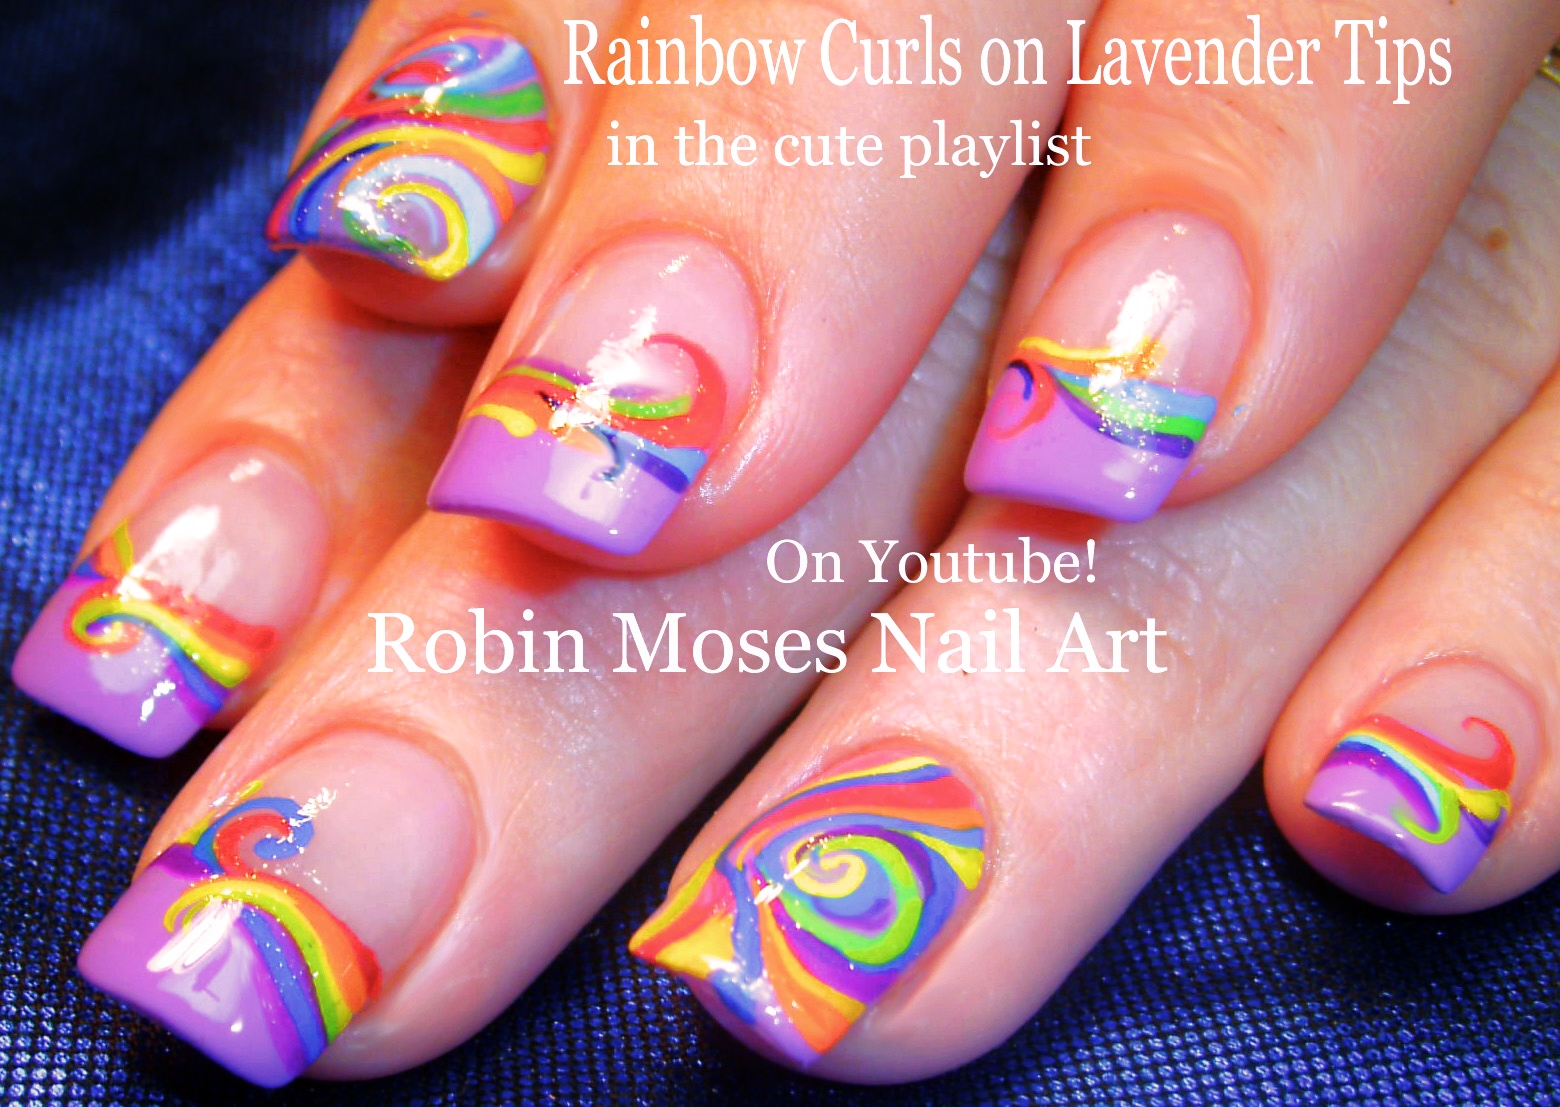 Rainbow Curls On Lavender Tips Nail Art Design Tutorial And Pink Black White Flower Nails